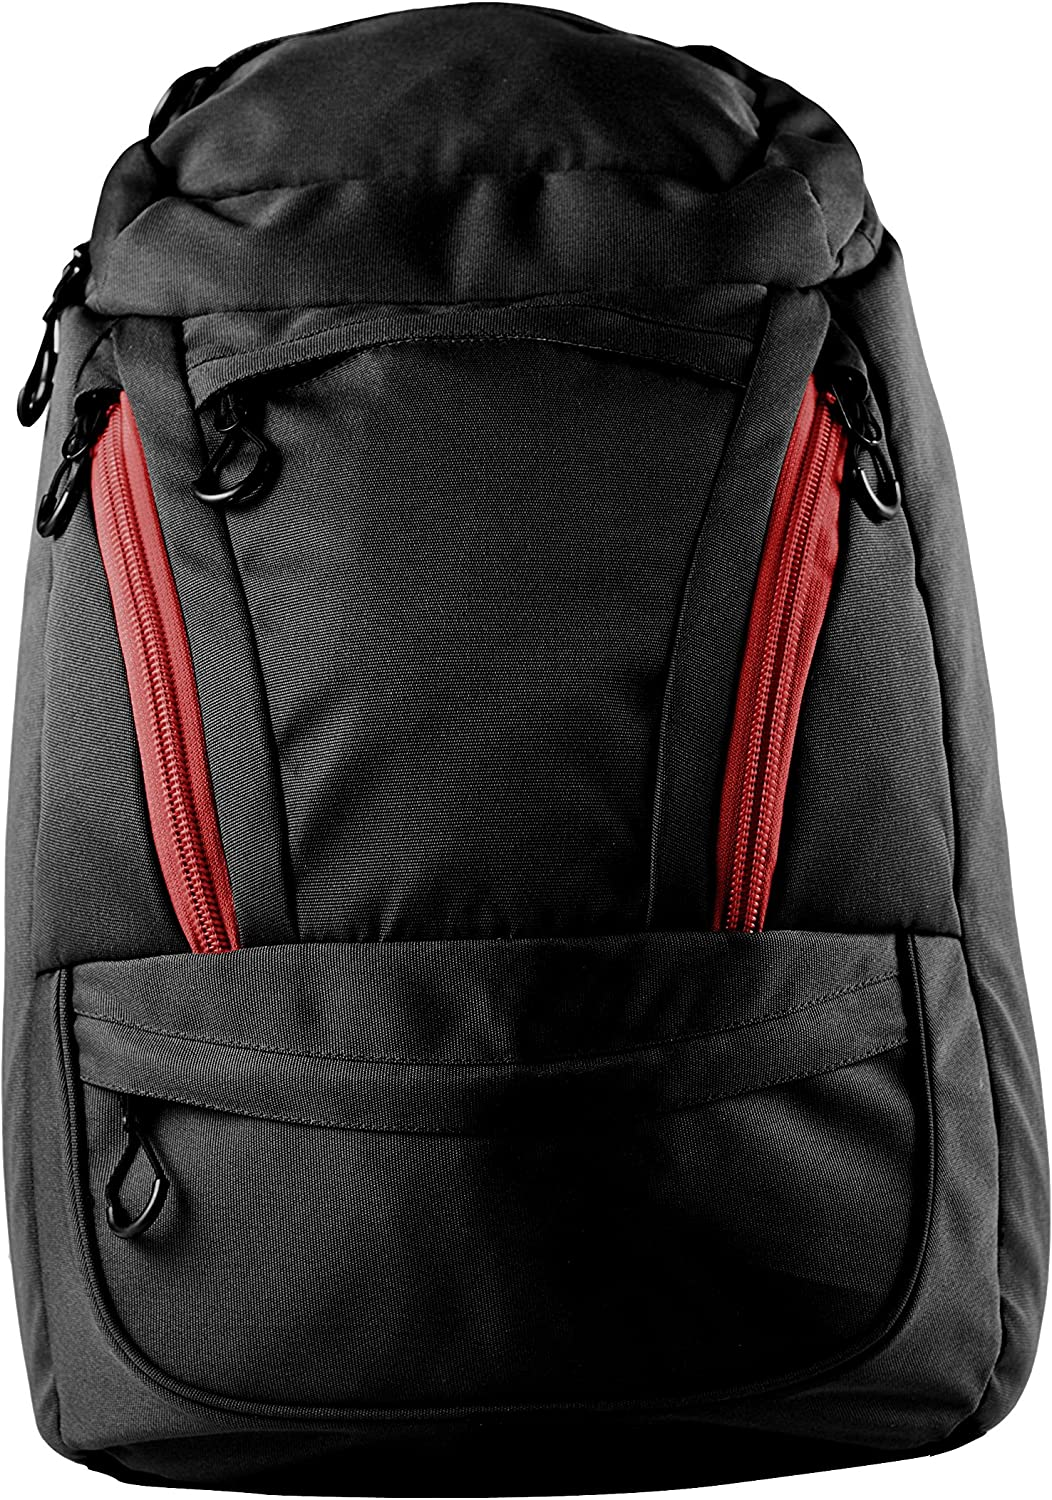 Kelvin Coolers New Insulated Soft Cooler Backpack 3yr Leakproof Warranty. for Picnic, Hiking, Beach, Park, Tailgate, 24 Can, Black